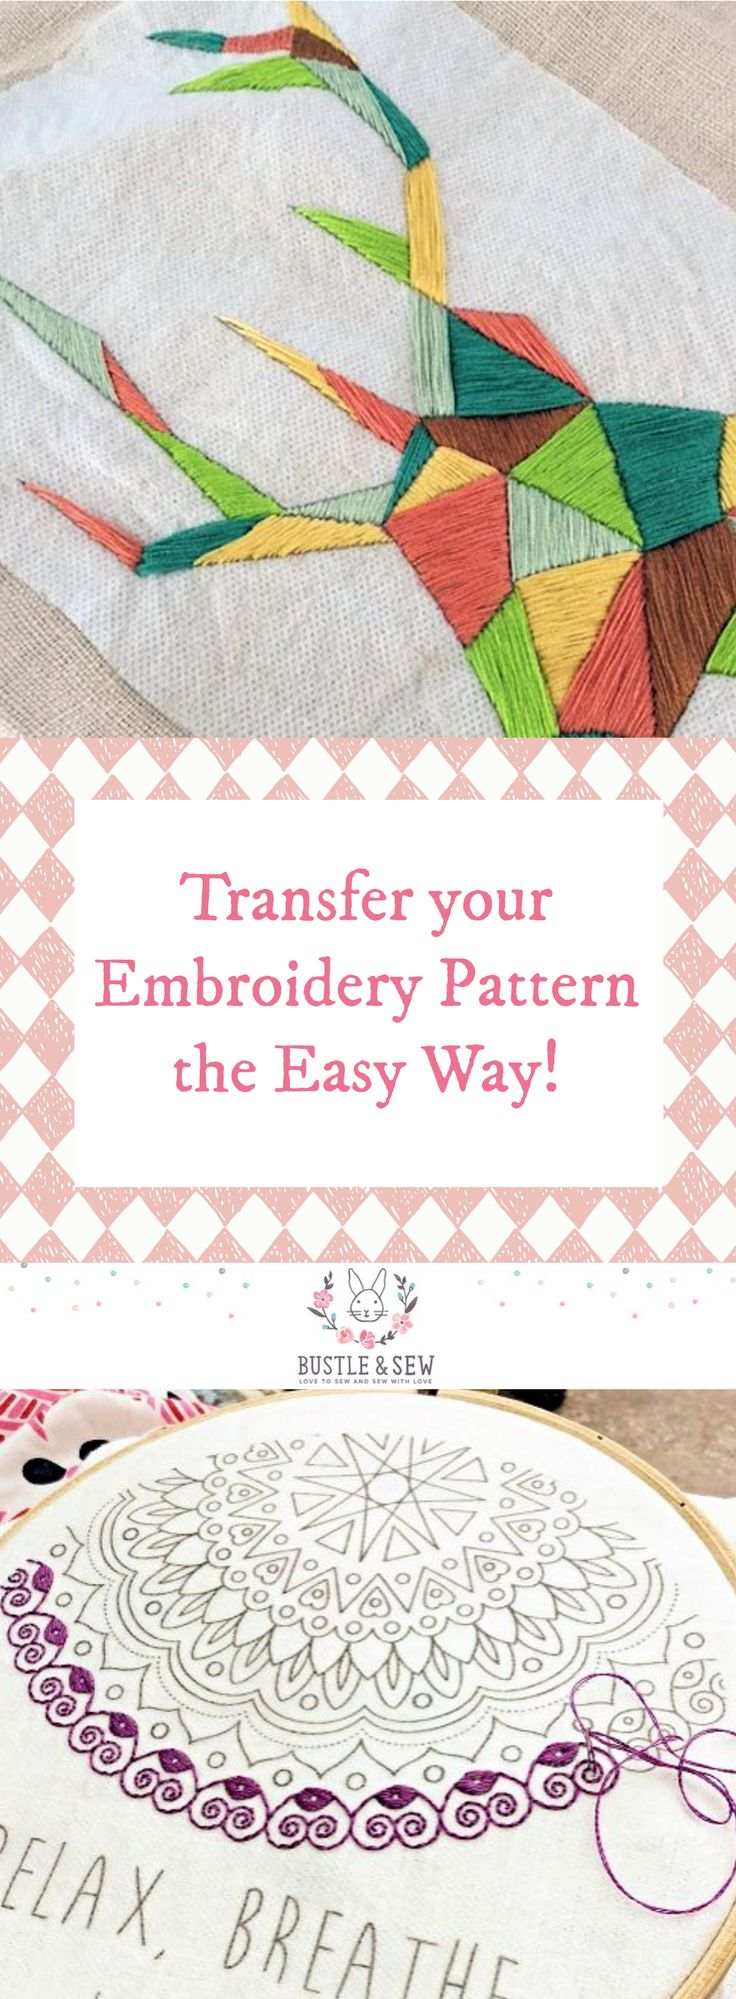 Outline embroidery designs for tablecloth - Transfer Your Embroidery Pattern The Easy Way Tutorial From Bustle Sew